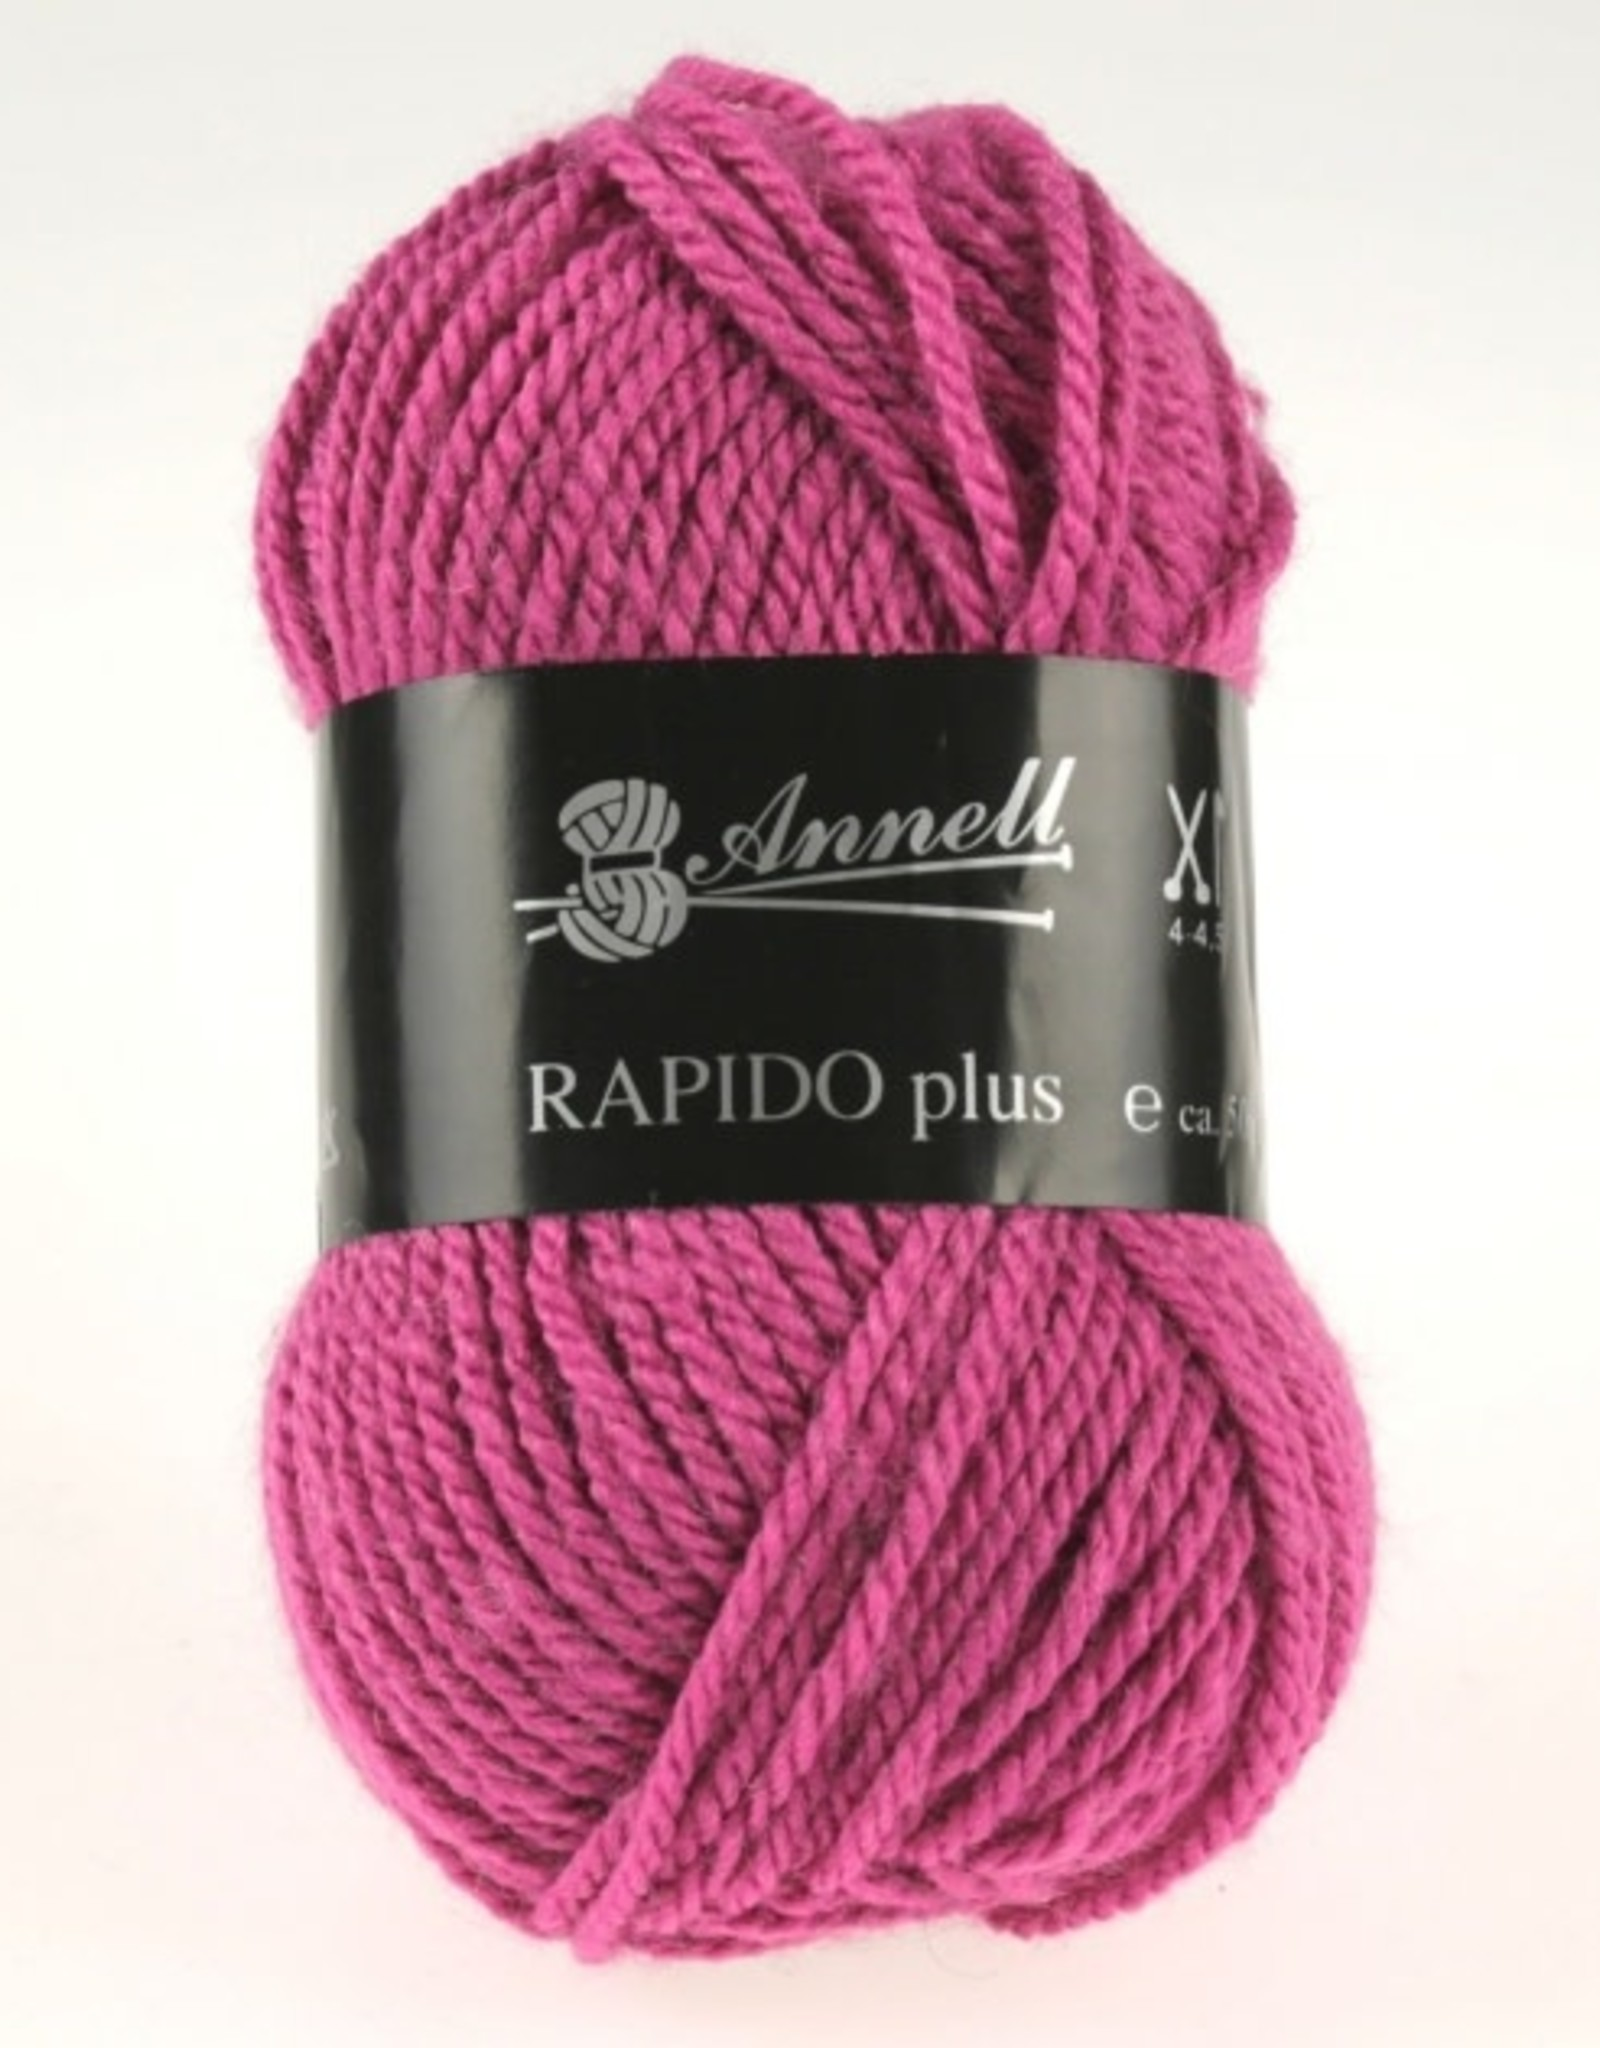 Annell Annell rapido plus 9279